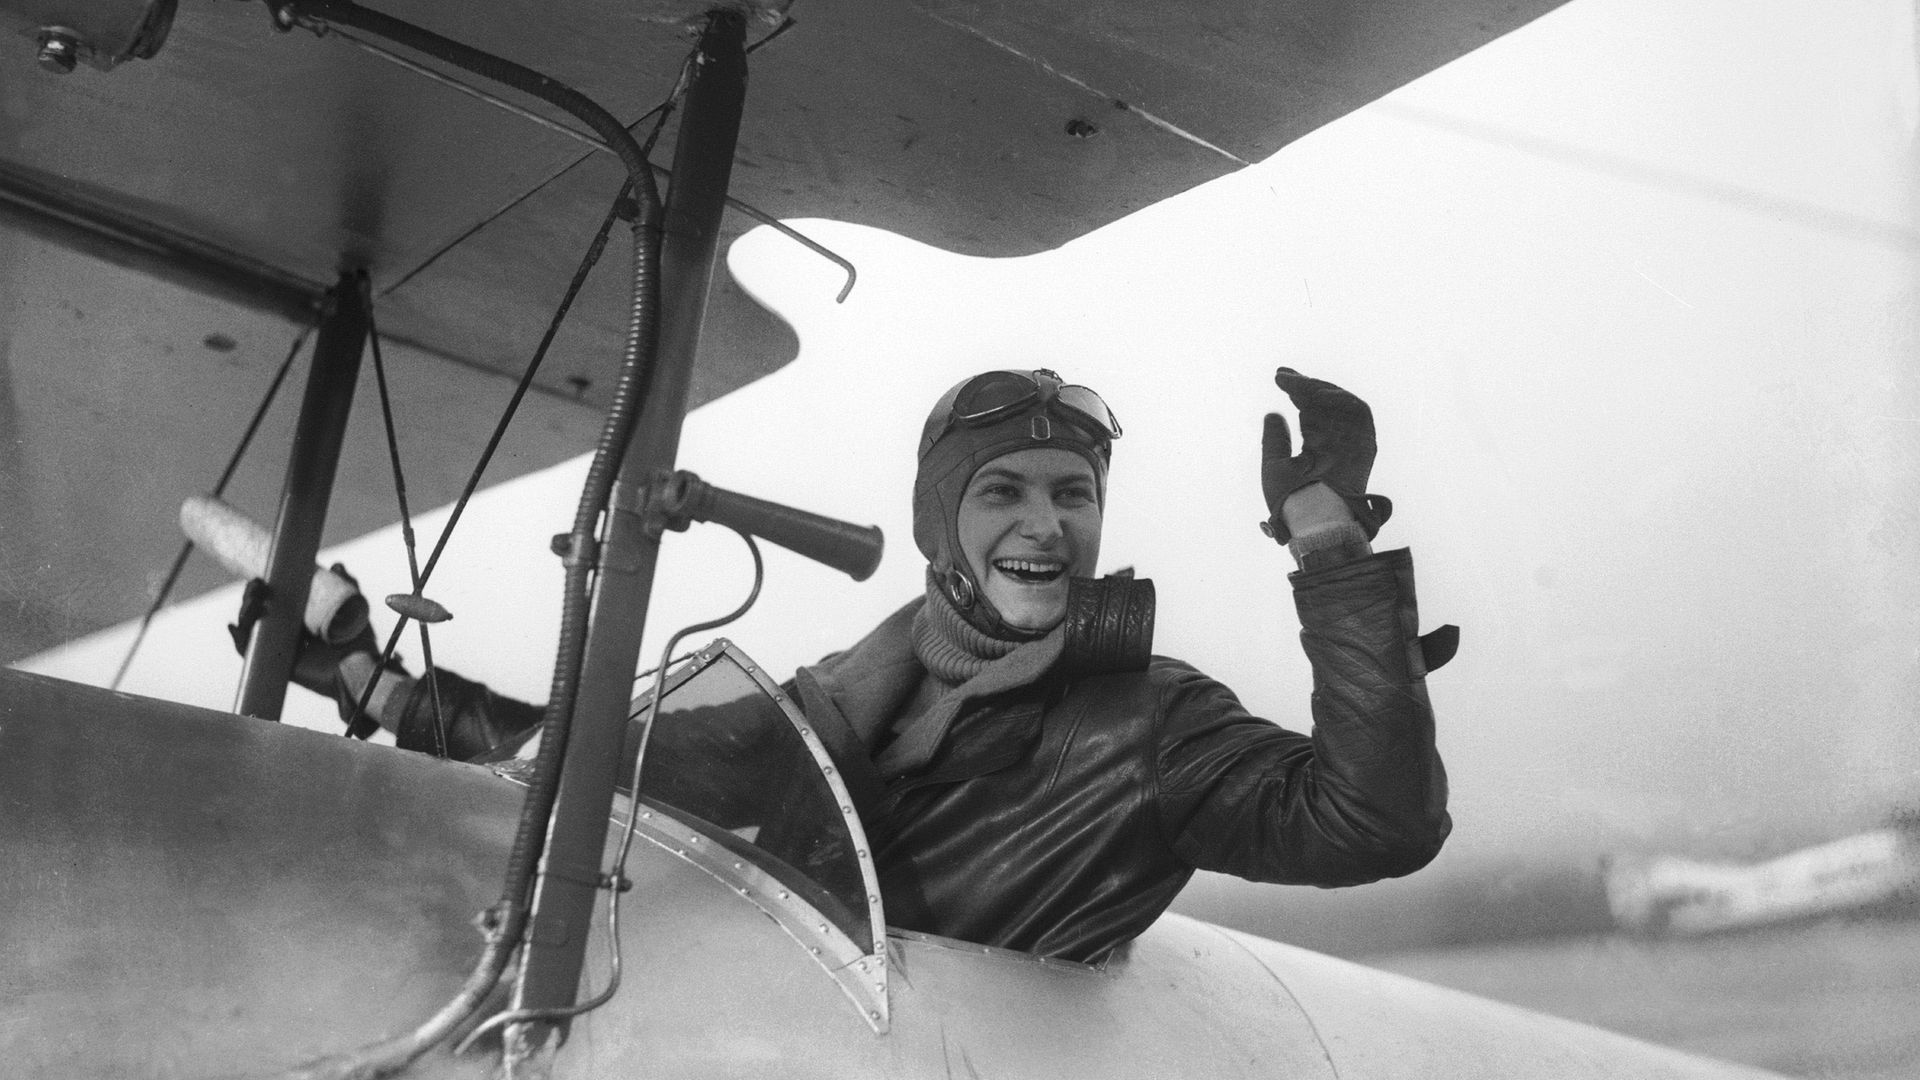 Hélène Boucher at Bourget airport in 1929 - Credit: Gamma-Keystone via Getty Images